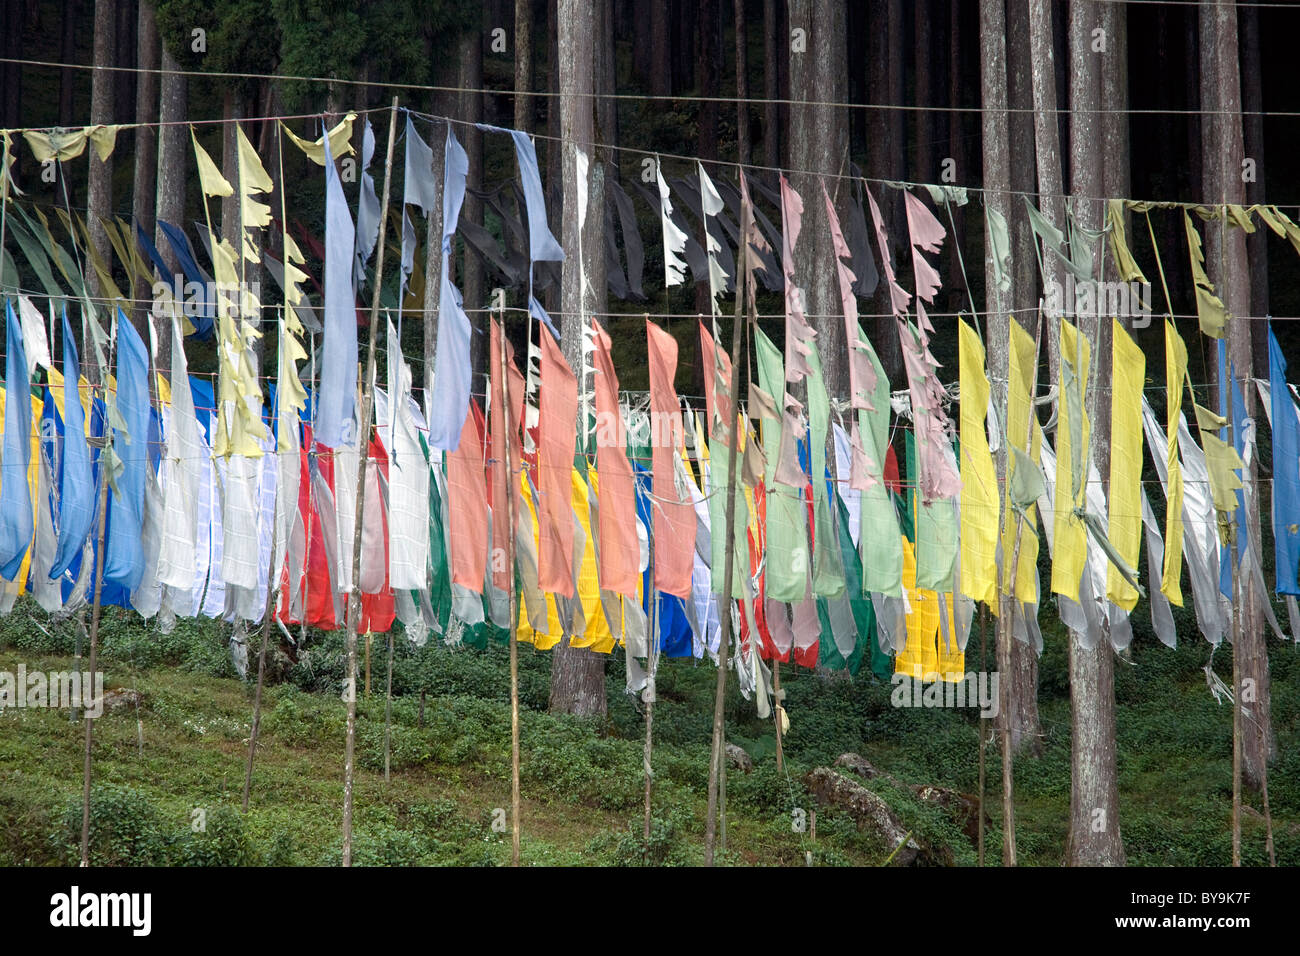 Buddhist prayer flags, raised for peace of the soul, flutter on a rural hillside in northeast India - Stock Image